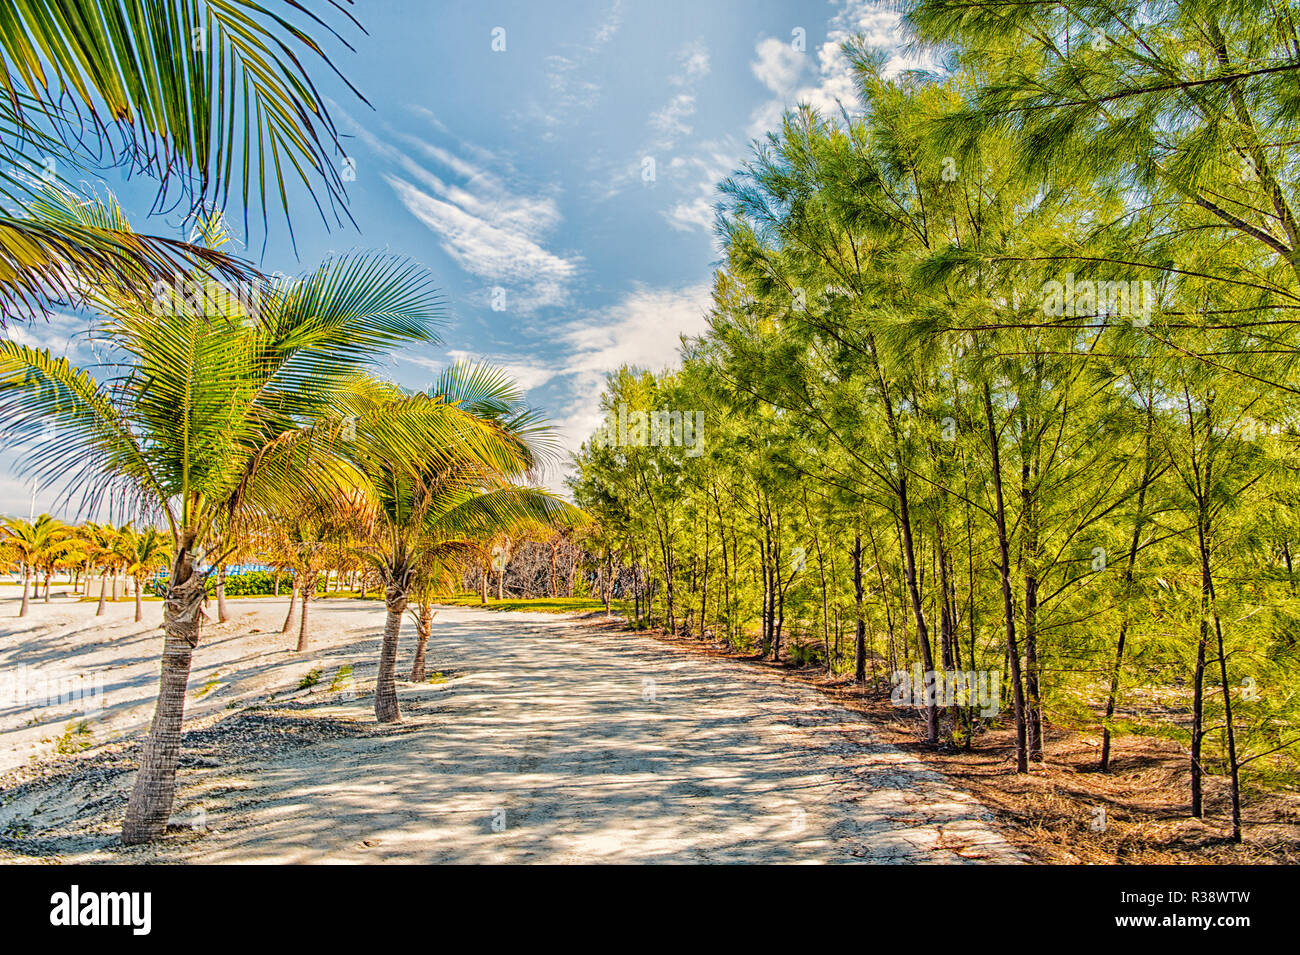 Tropical Landscape Of Palms And Trees On White Sand Path Way Or